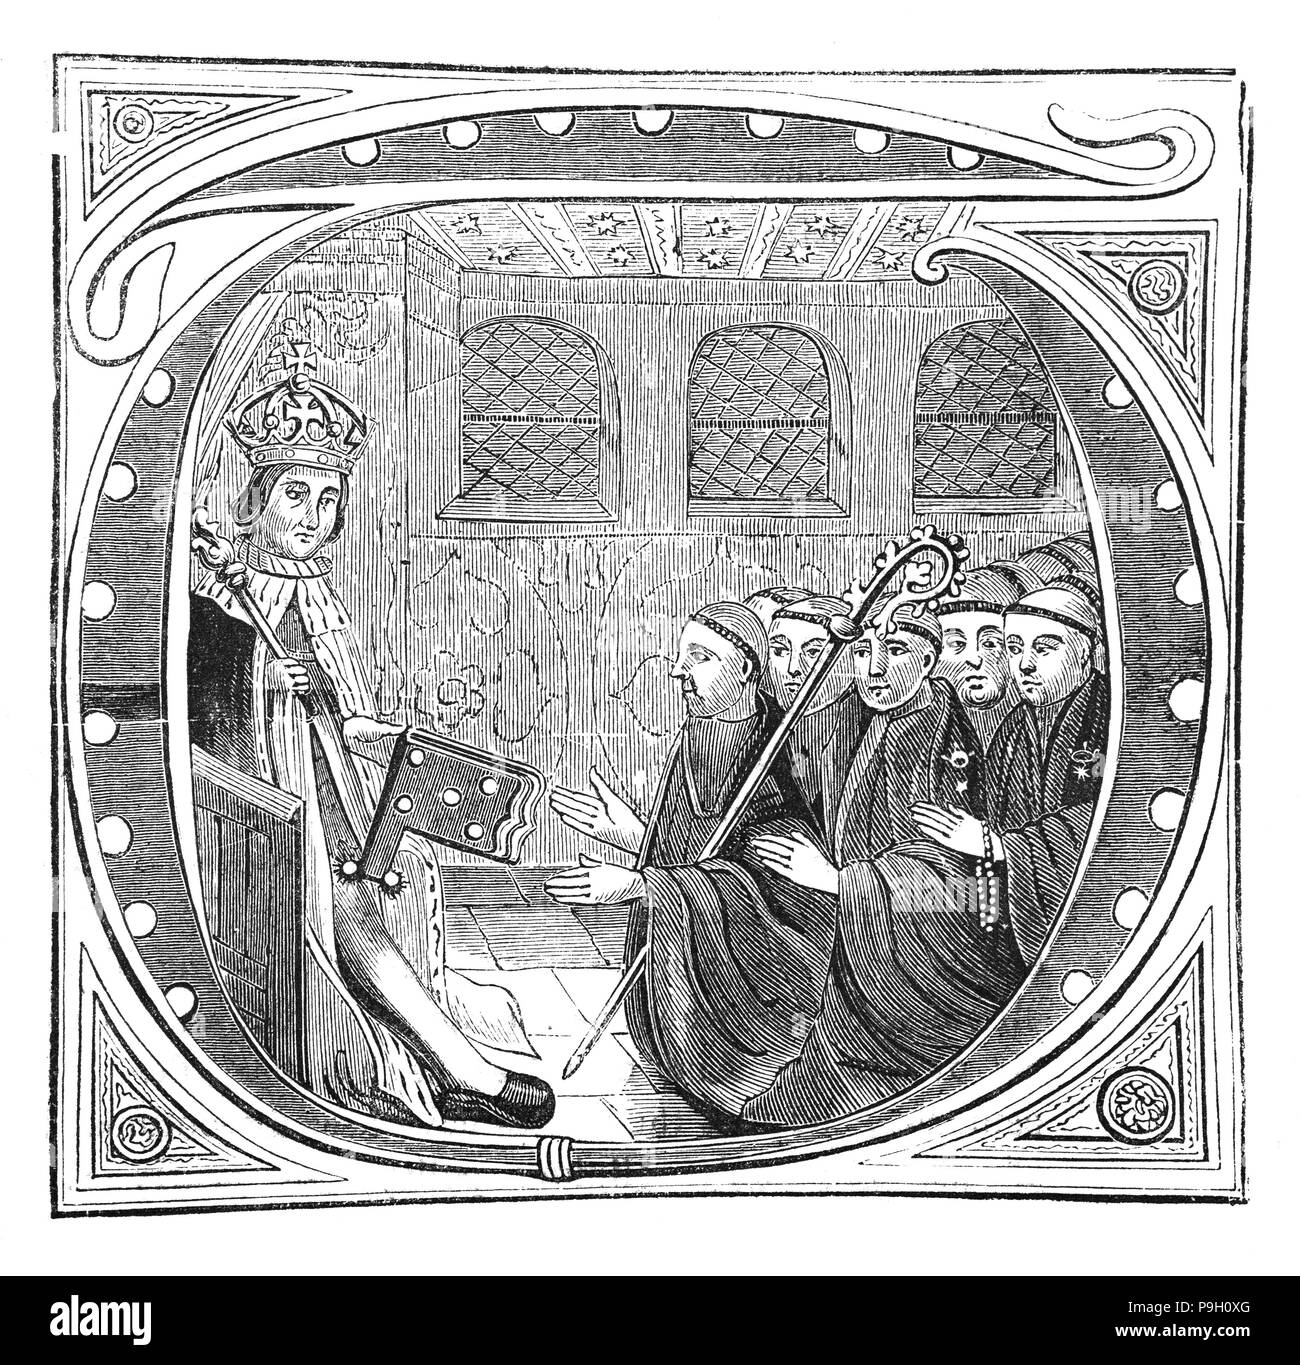 John Islip (1464–1532) was abbot of the monastery of Westminster, London. He was 36 years old he was made abbot on 27th October 1500 and was a friend of both Henry VII and Henry VIII, becoming a Privy Councillor. Seen here  in the early 16th Century, receiving from King Henry VII the Book of Independence which specified the number of masses on the occasion of a Royal Death. - Stock Image